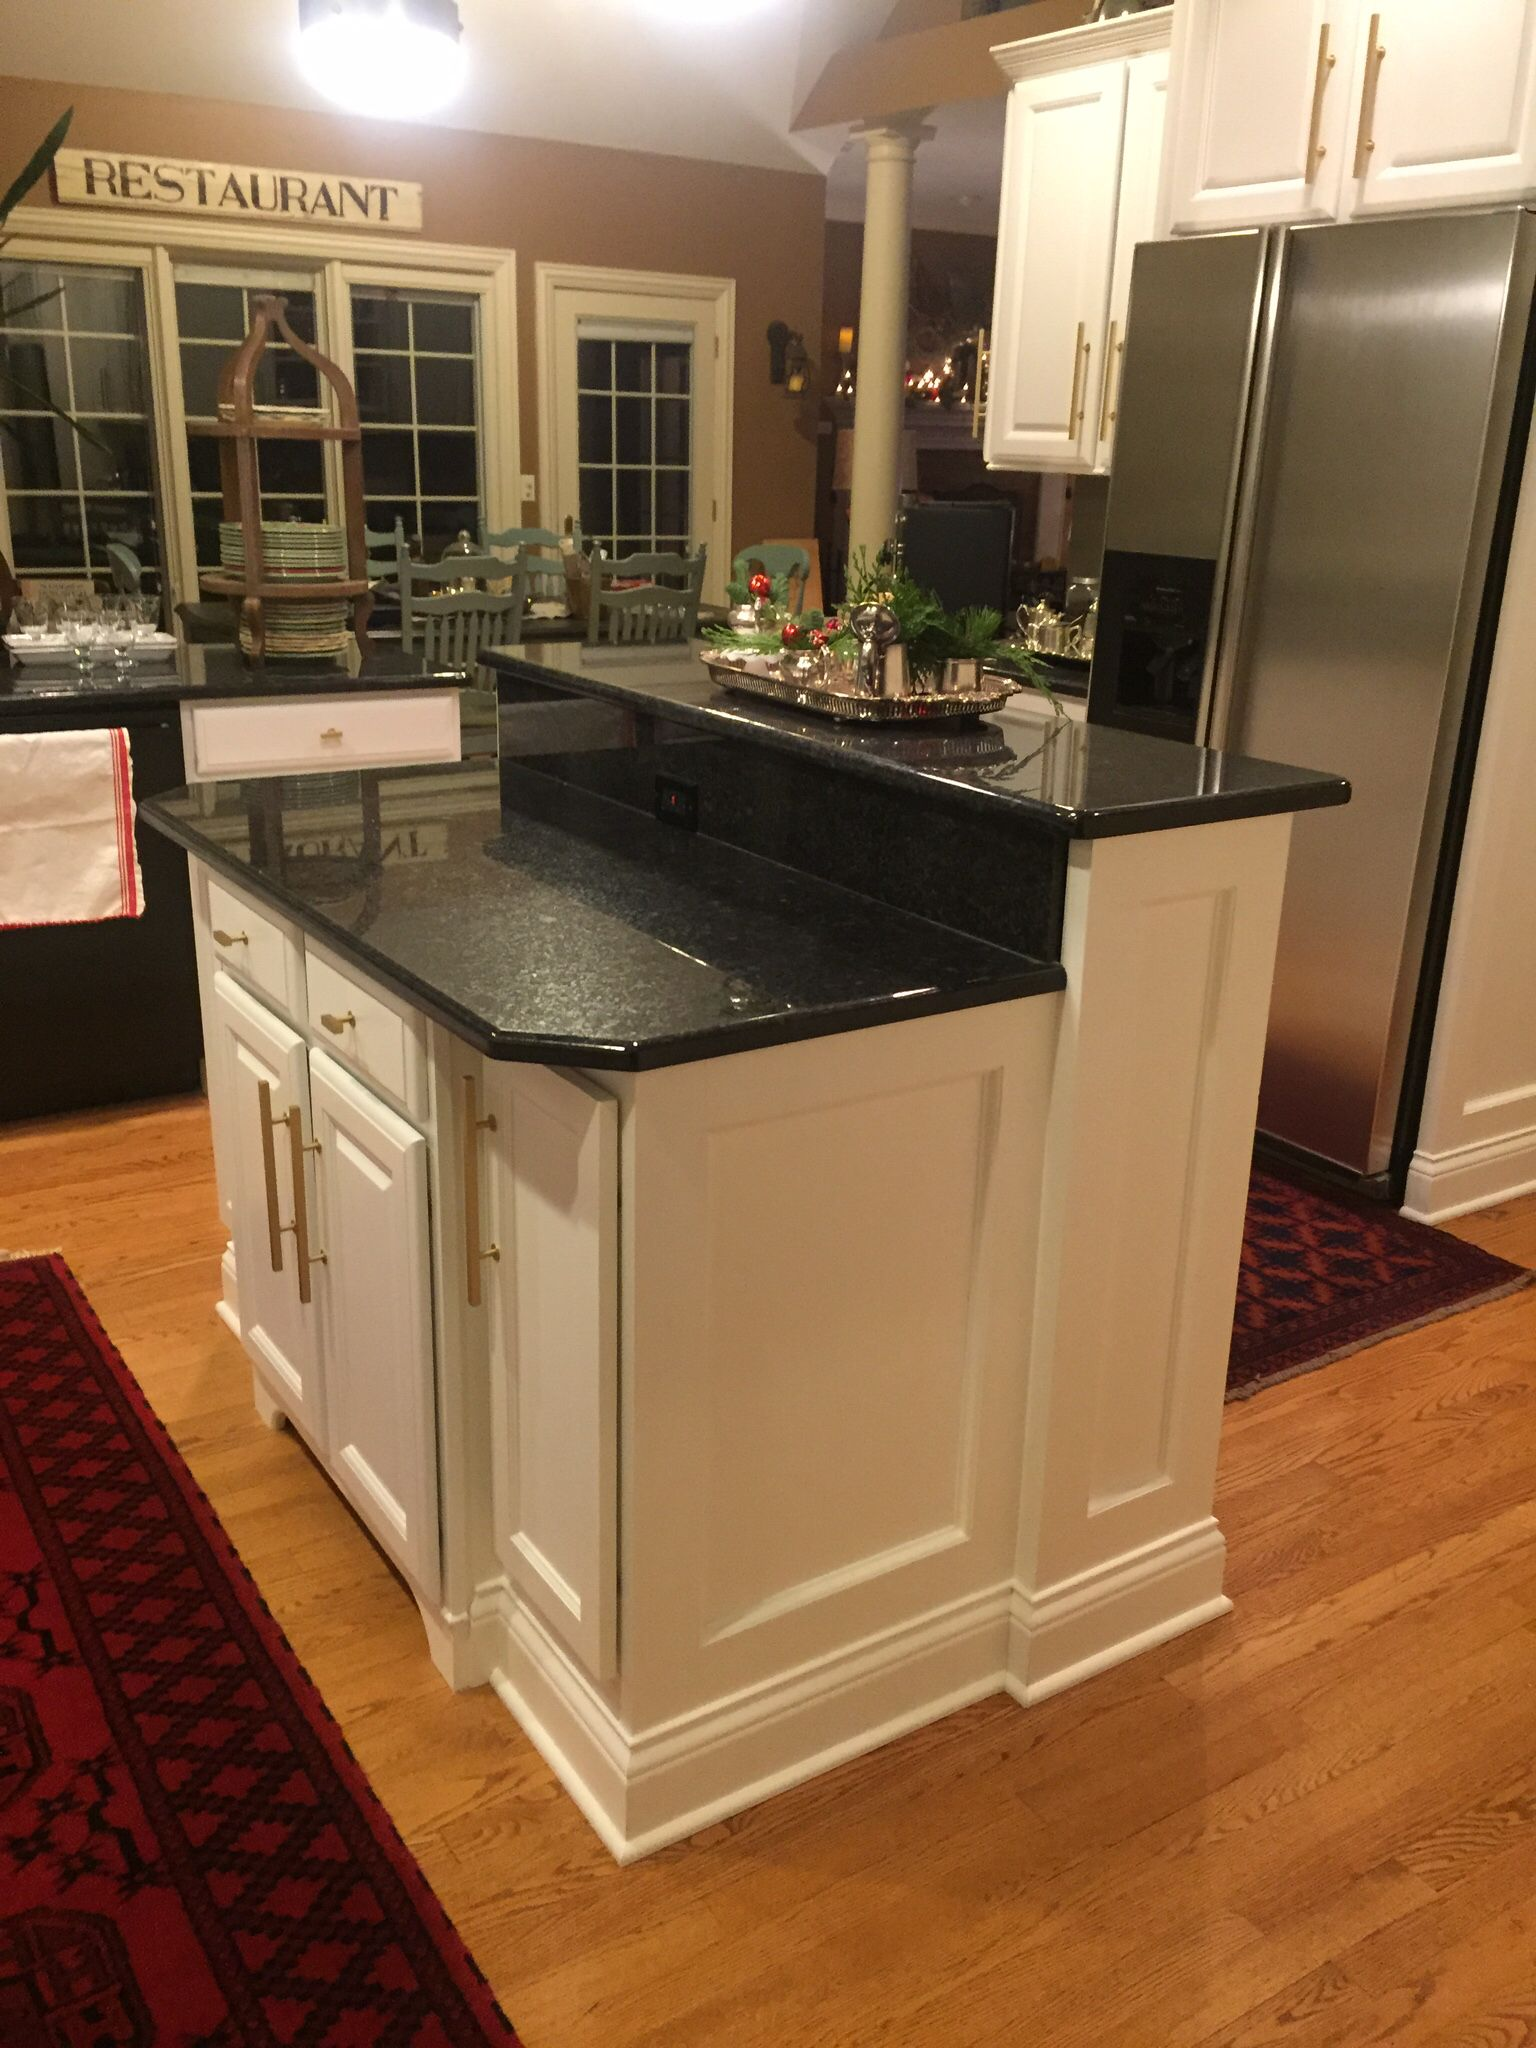 Two Tiered Island Total Update Kitchen Remodel Small Small Modern Kitchens Kitchen Island With Seating